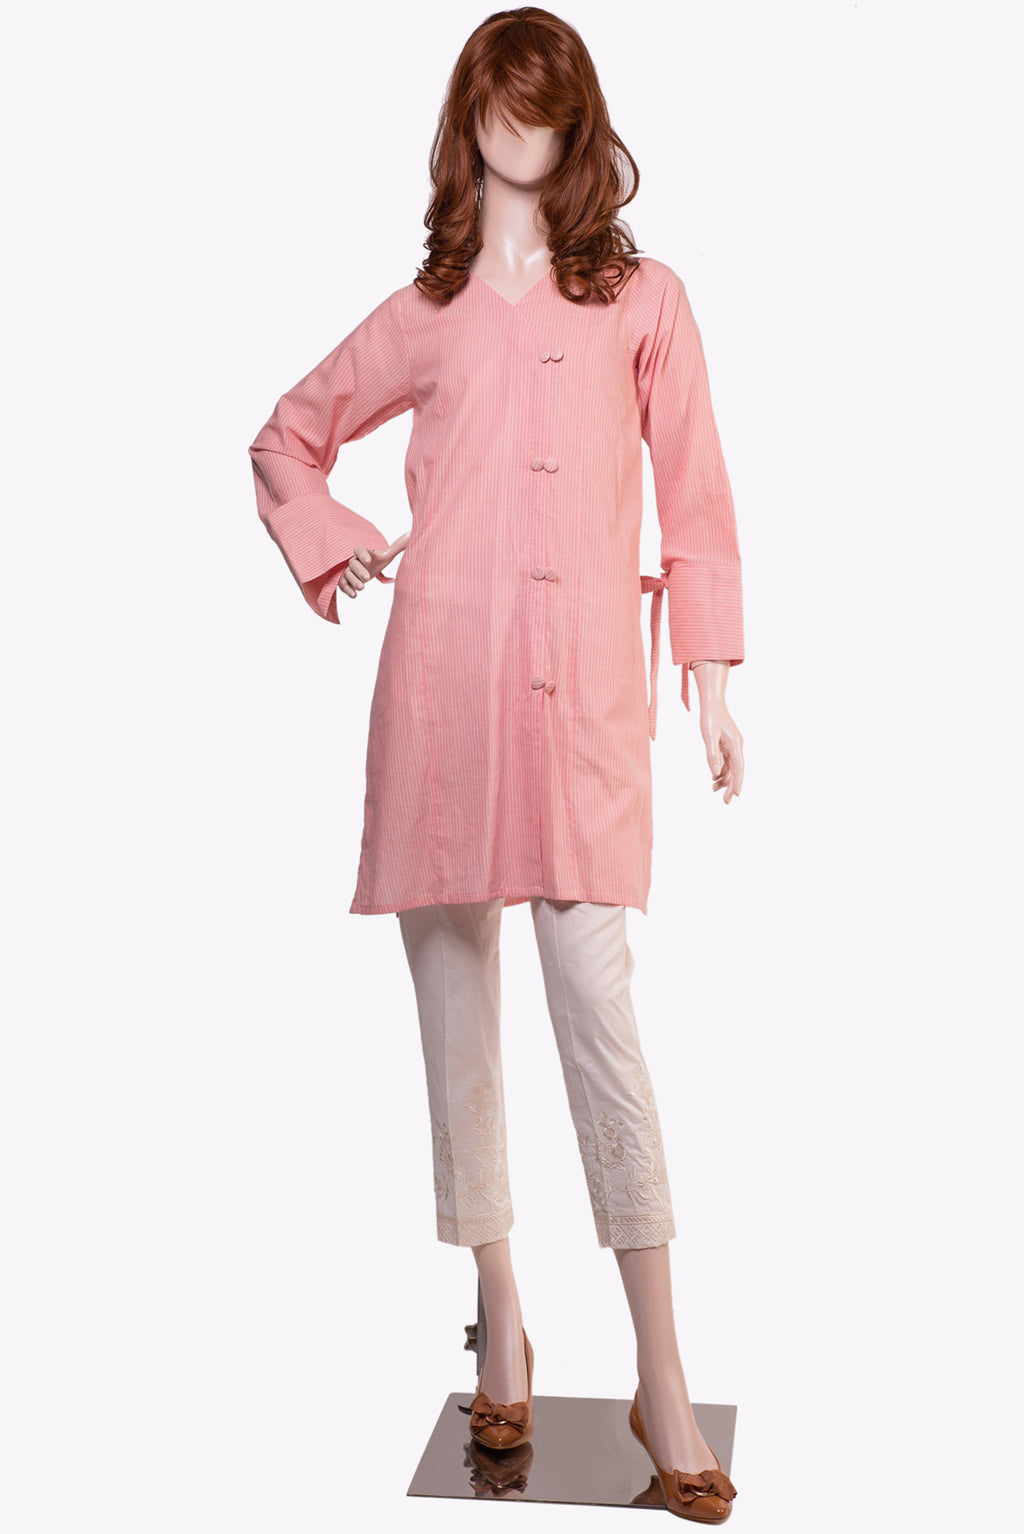 products/SP-343_Pink_FRONT.jpg